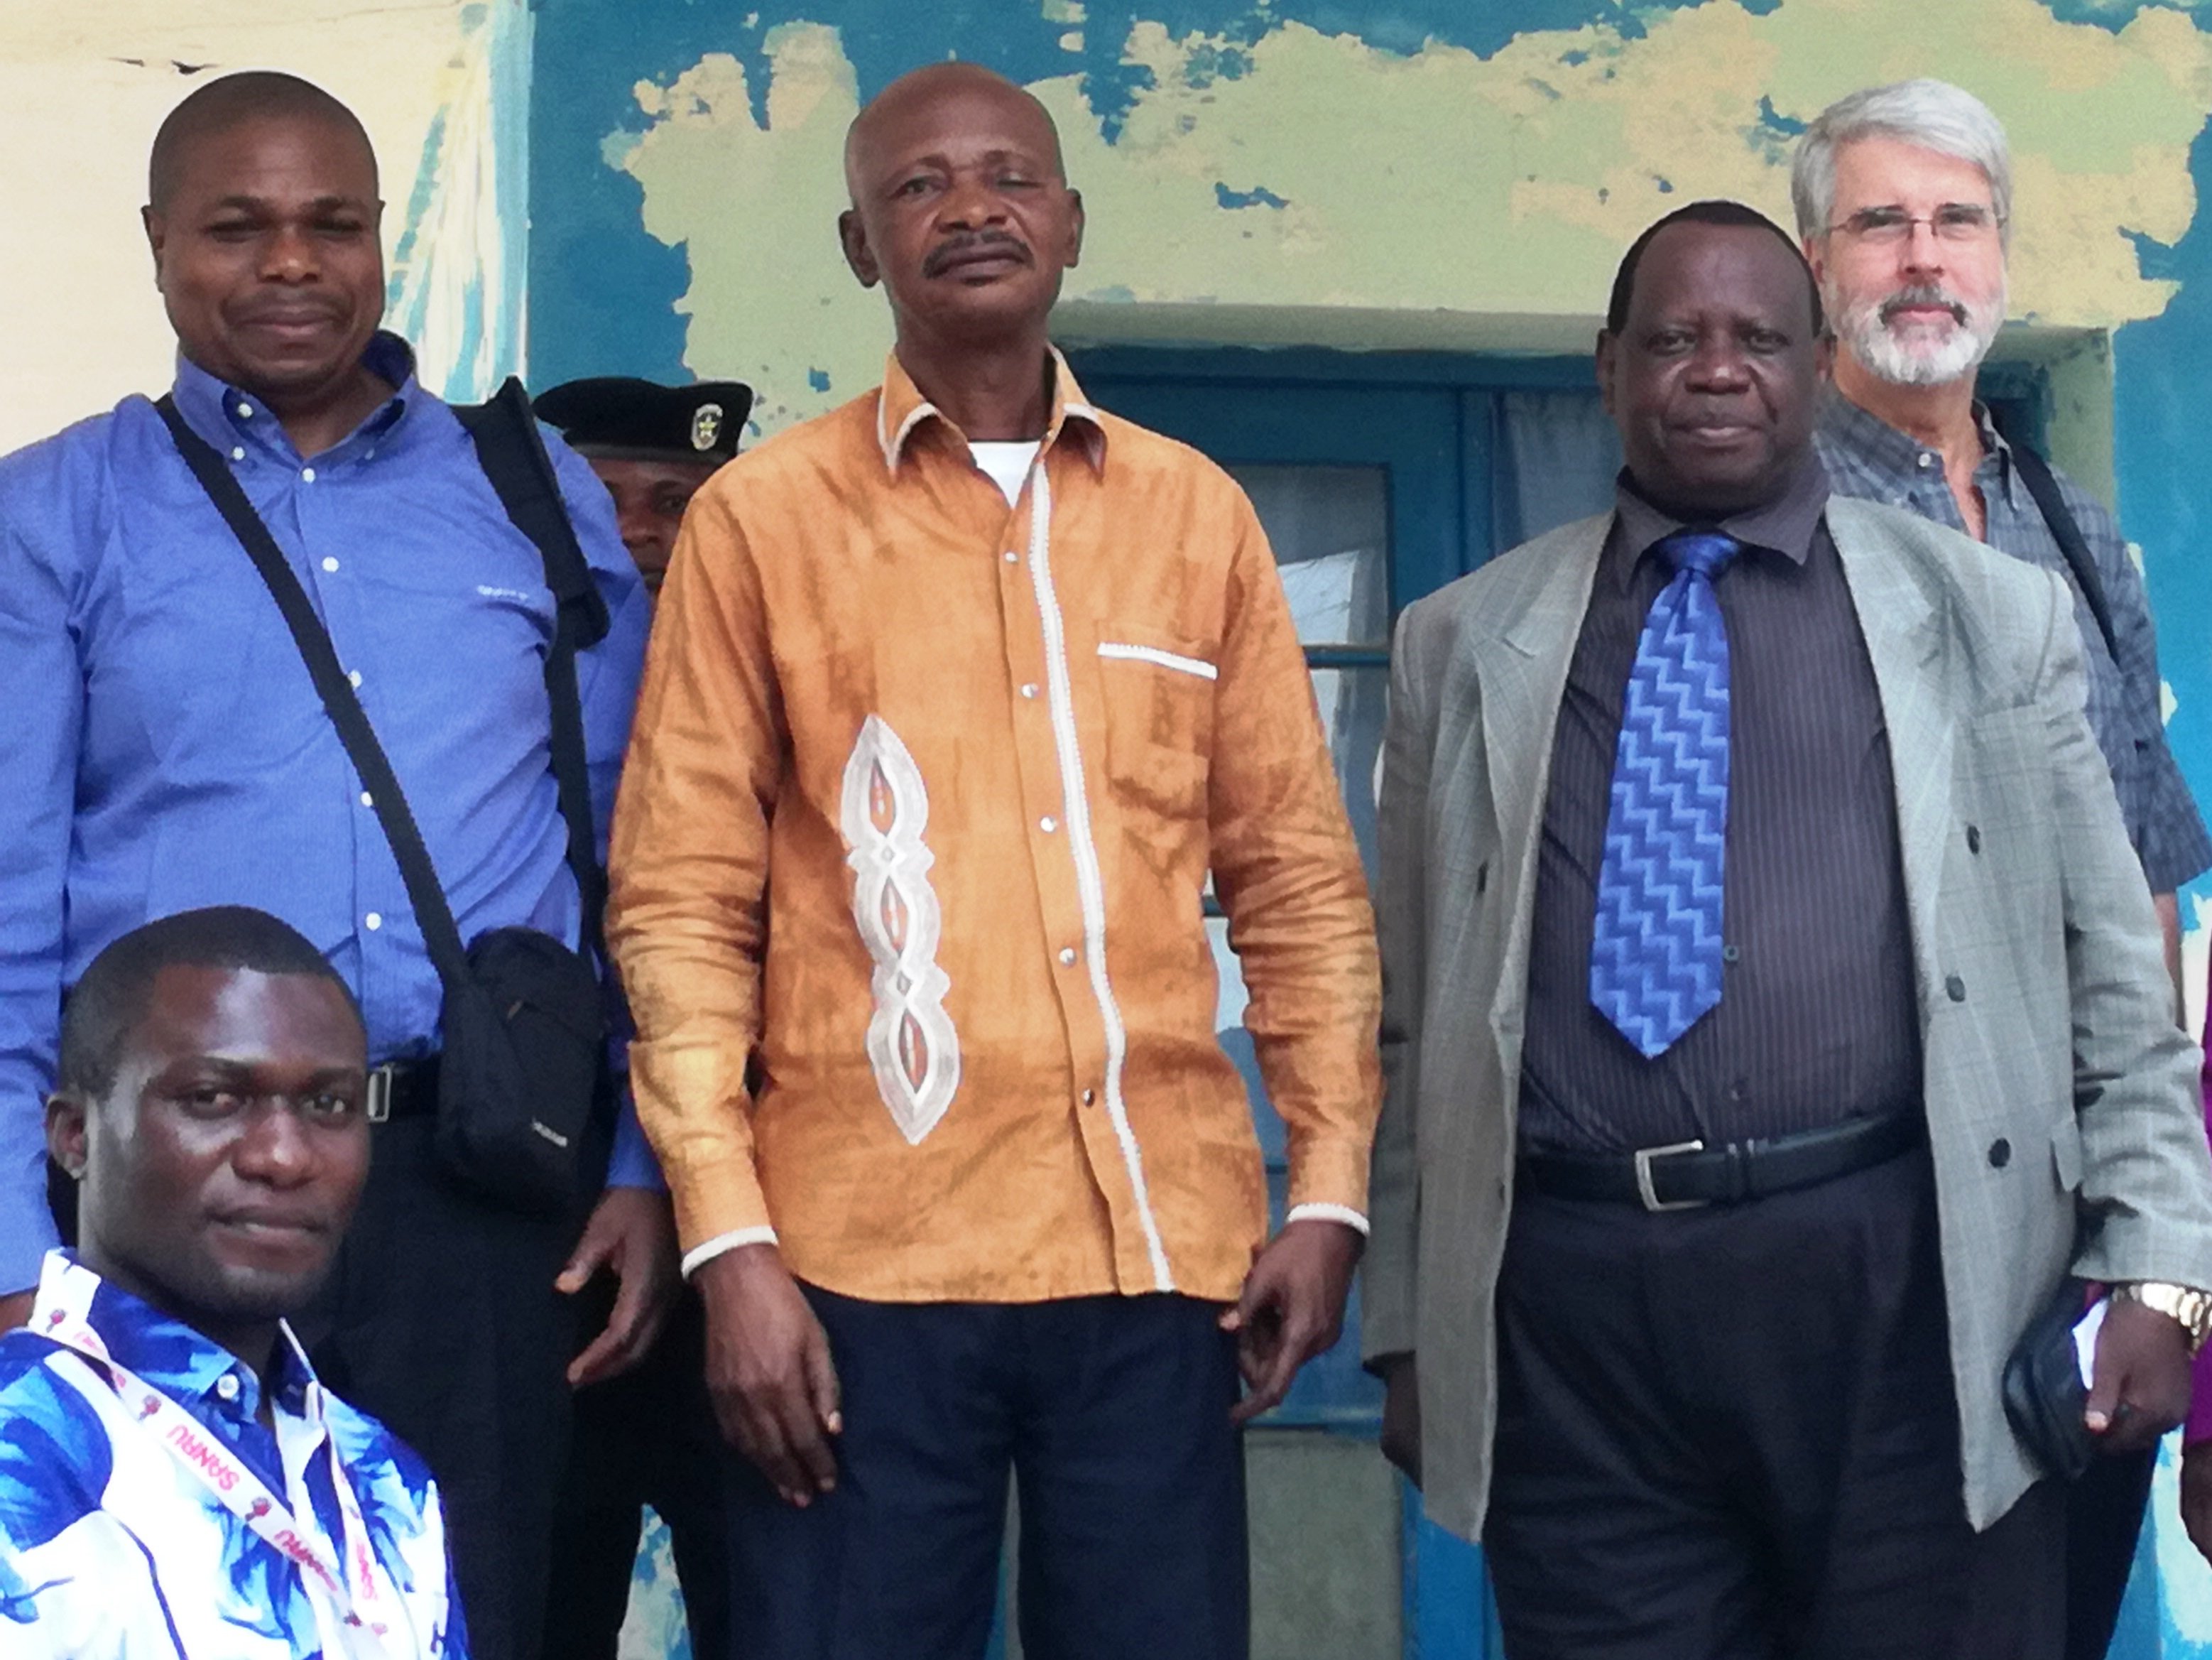 ASSP Technical Director Dr. Bernard Ngoy on the left (blue shirt) with the government administrator of the Ilebo Territory, Dr. Pierre Sambu from the Ministry of Health and Dr. Larry Sthreshley.